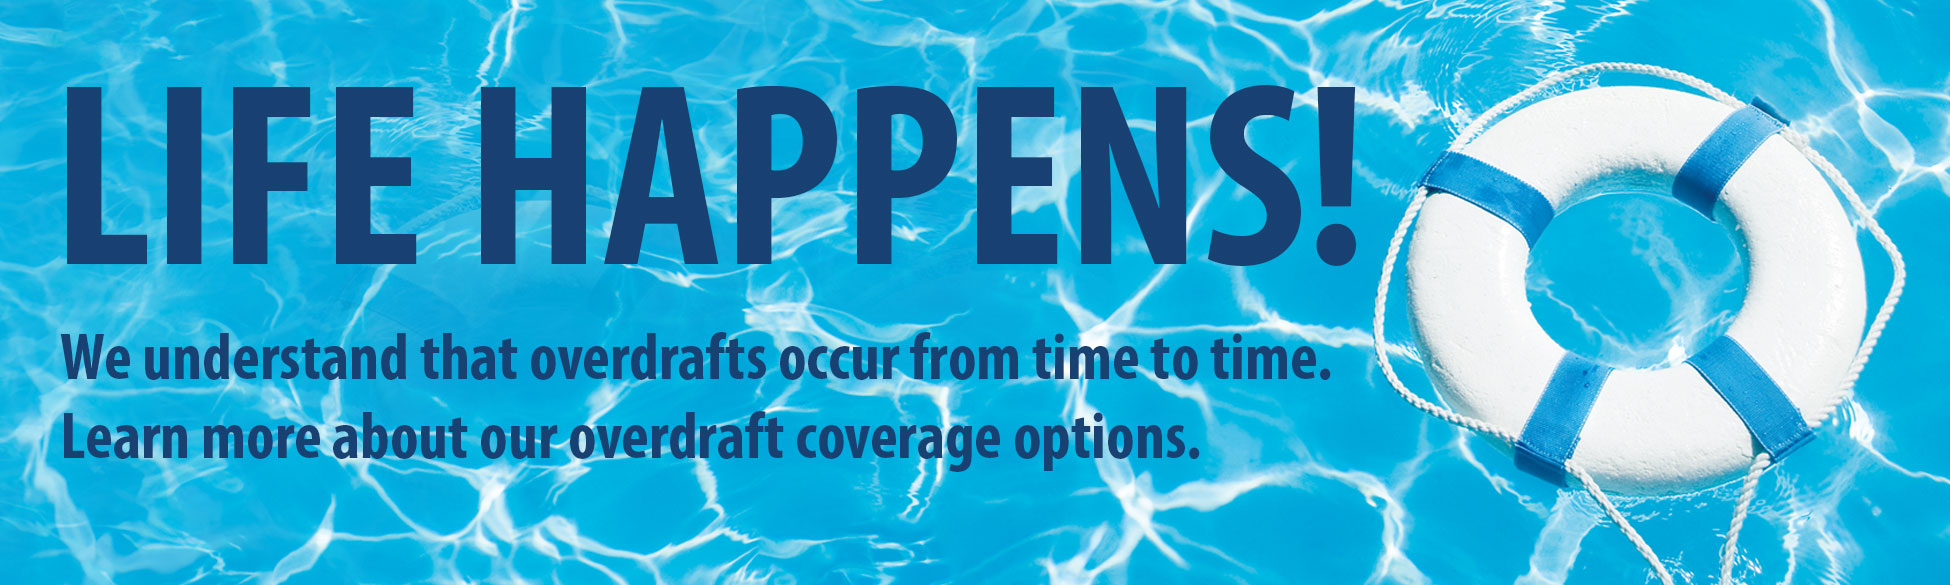 Life Happens! We understand that overdrafts occur from time to time. Learn more about our overdraft coverage options.